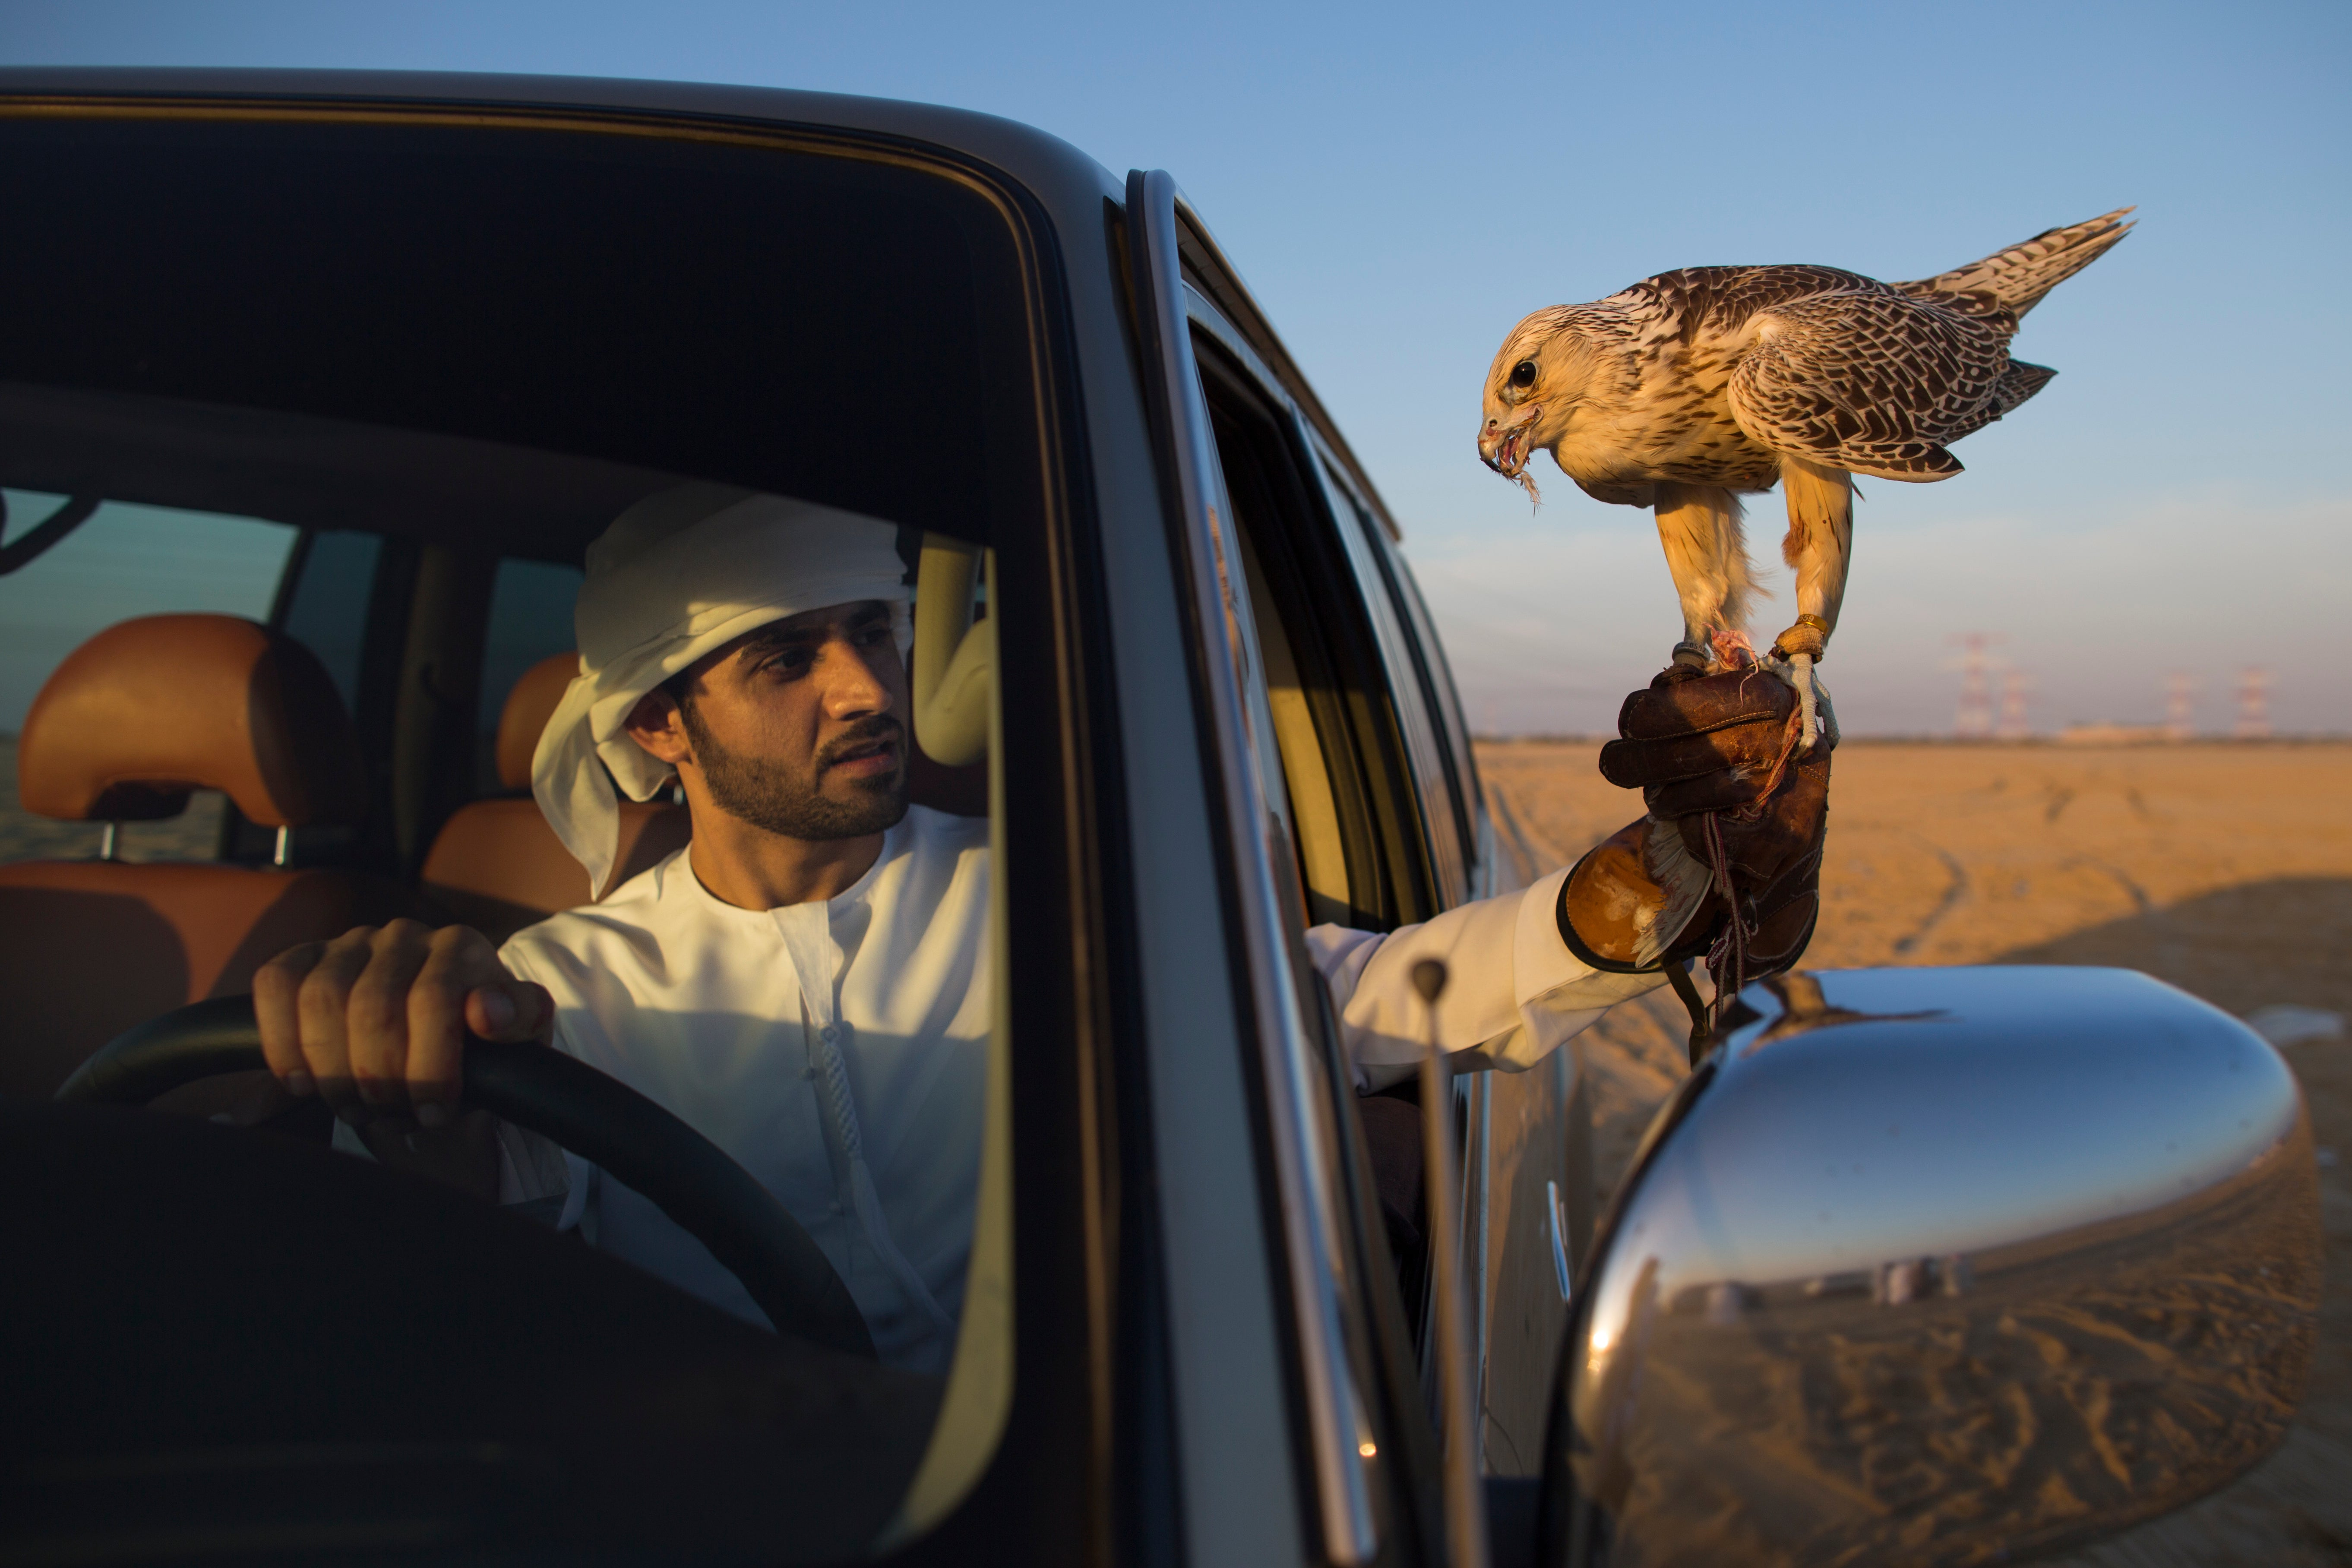 Falconers in Abu Dhabi Train Their Raptors With Drones